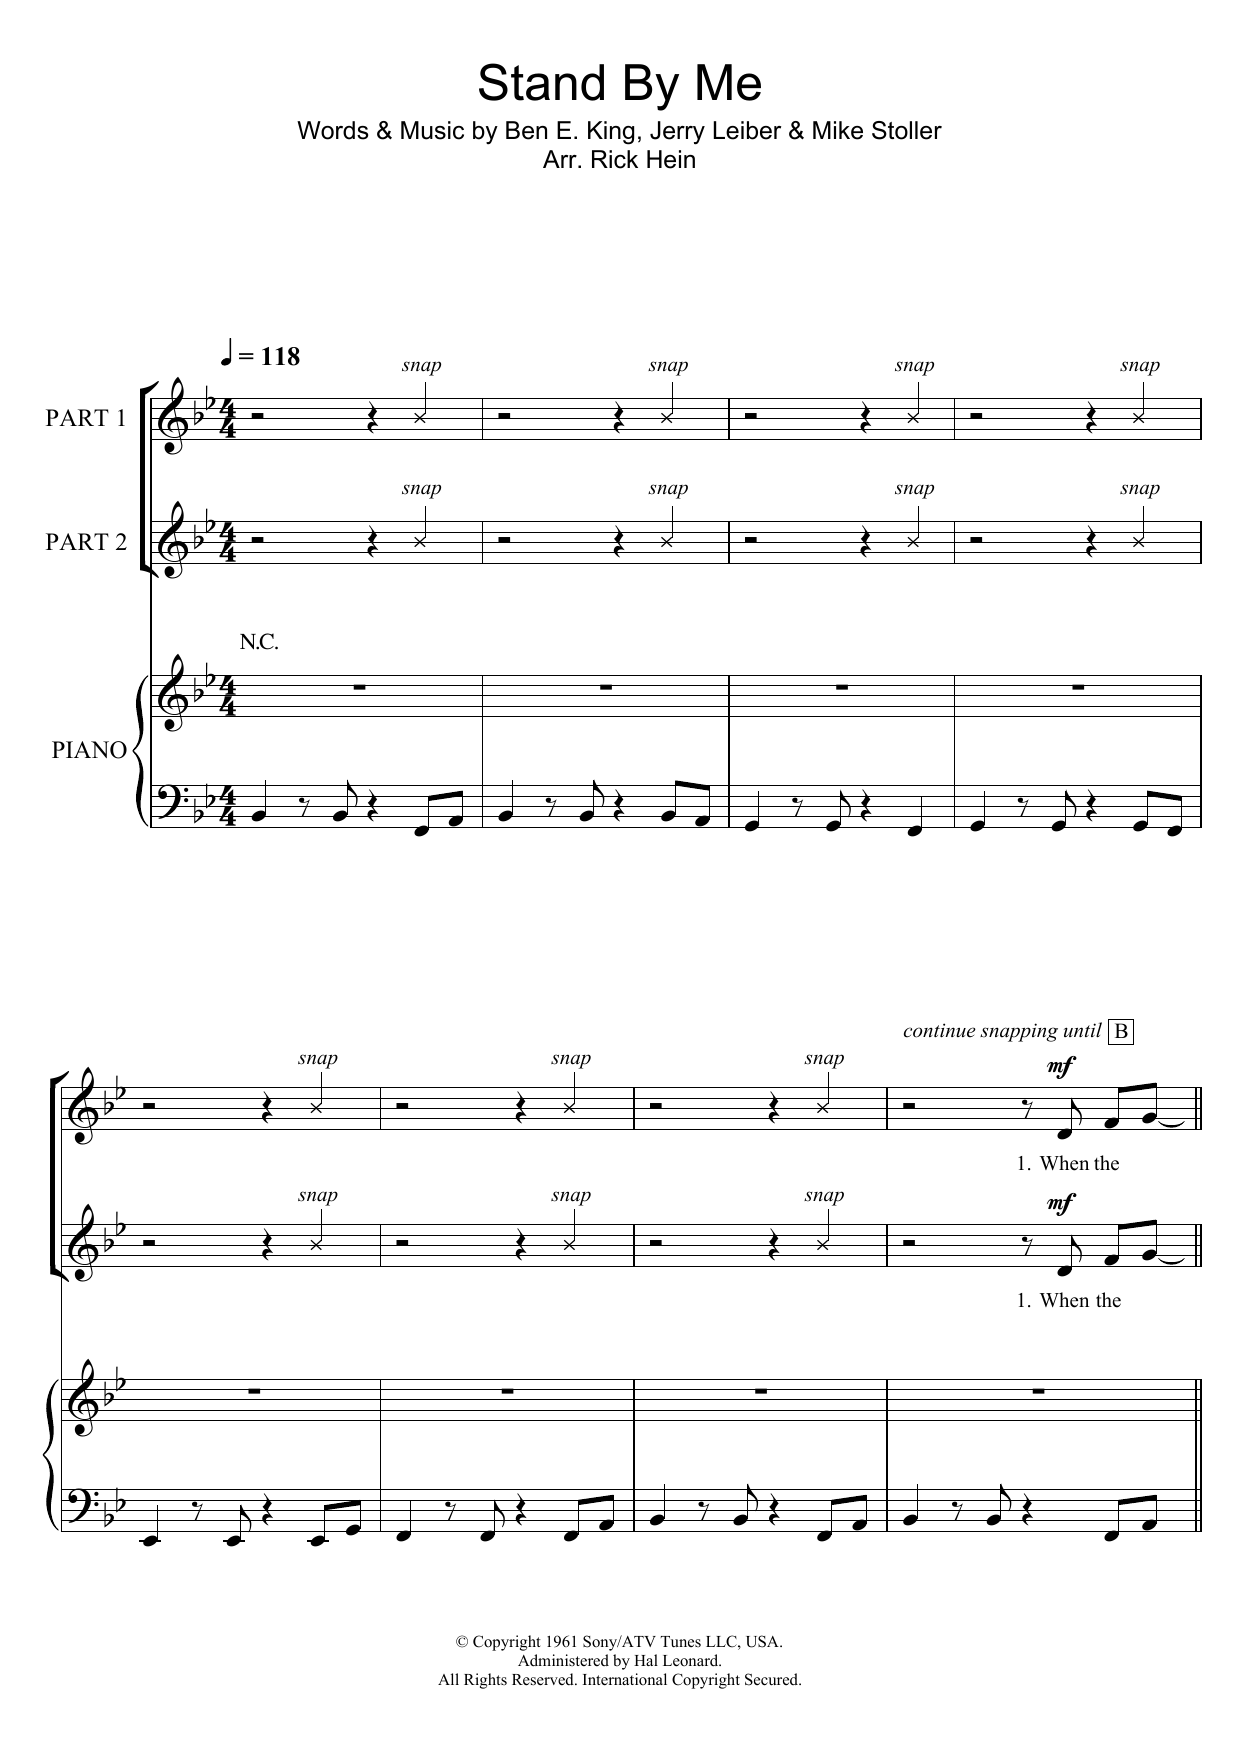 Stand By Me (arr. Rick Hein) Sheet Music